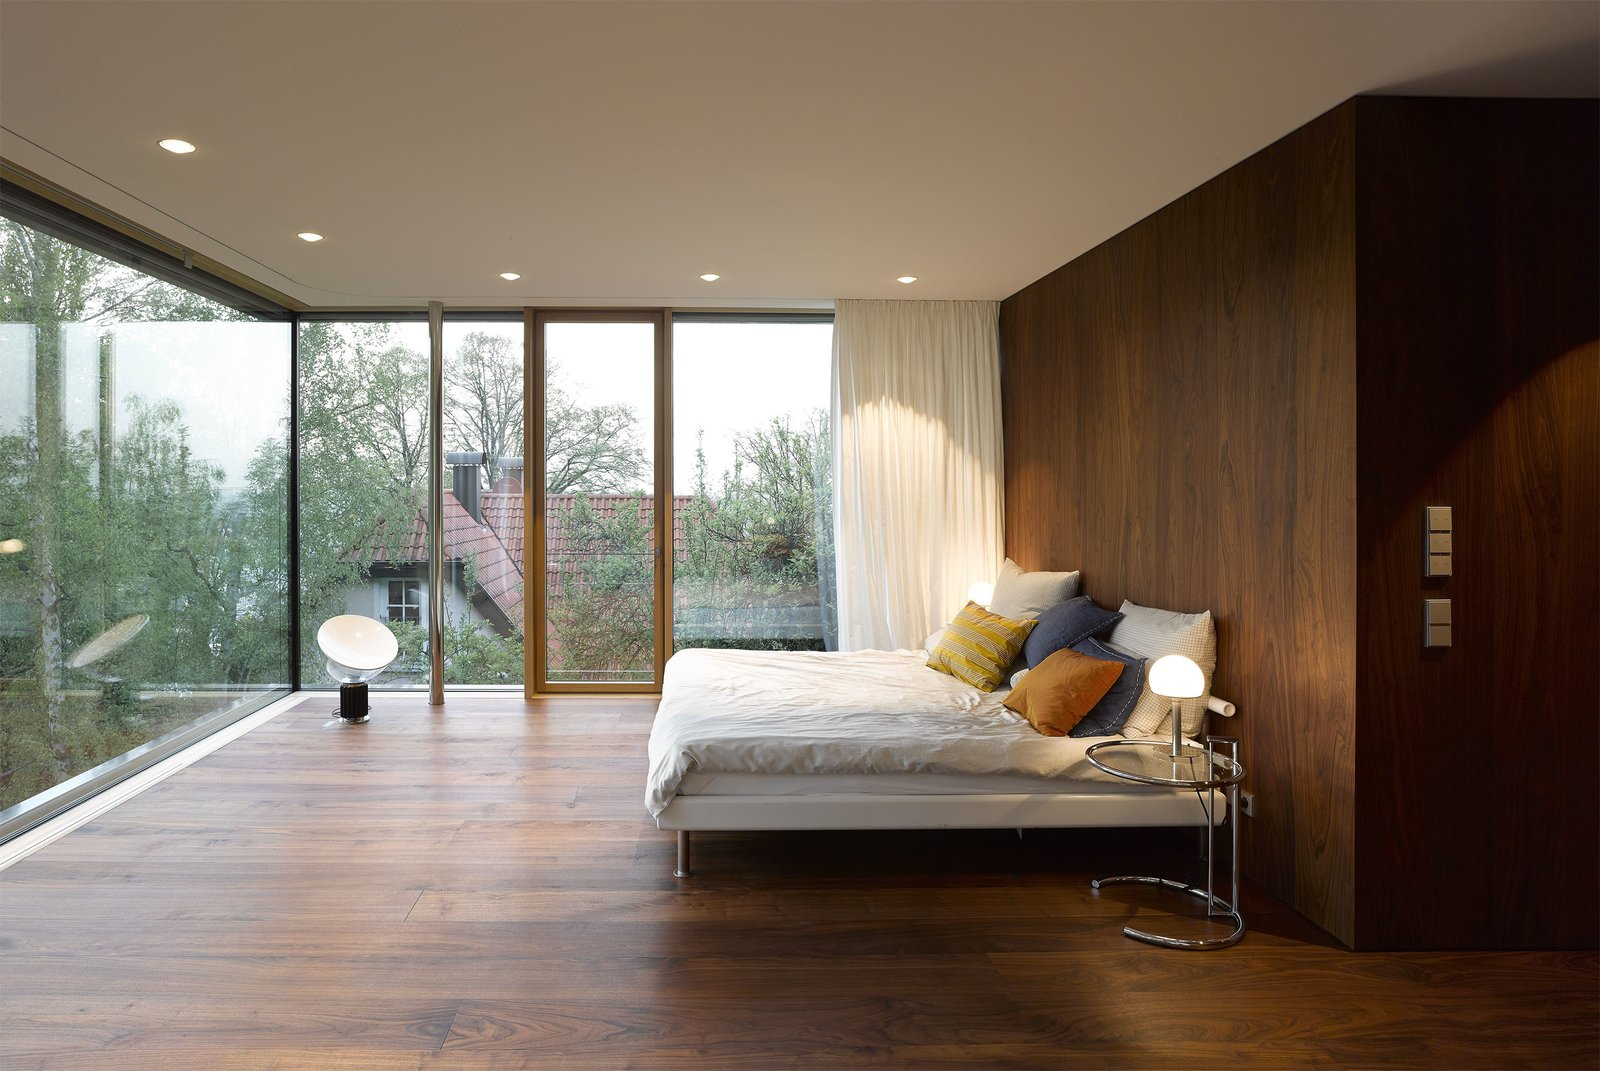 Bedroom, Night Stands, Table Lighting, Floor Lighting, Bed, Dark Hardwood Floor, Lamps, and Recessed Lighting Light streams into the bedroom through walls of floor-to-ceiling glass. The windows are triple-glazed, creating a tight, eco-friendly seal.  Bedroom